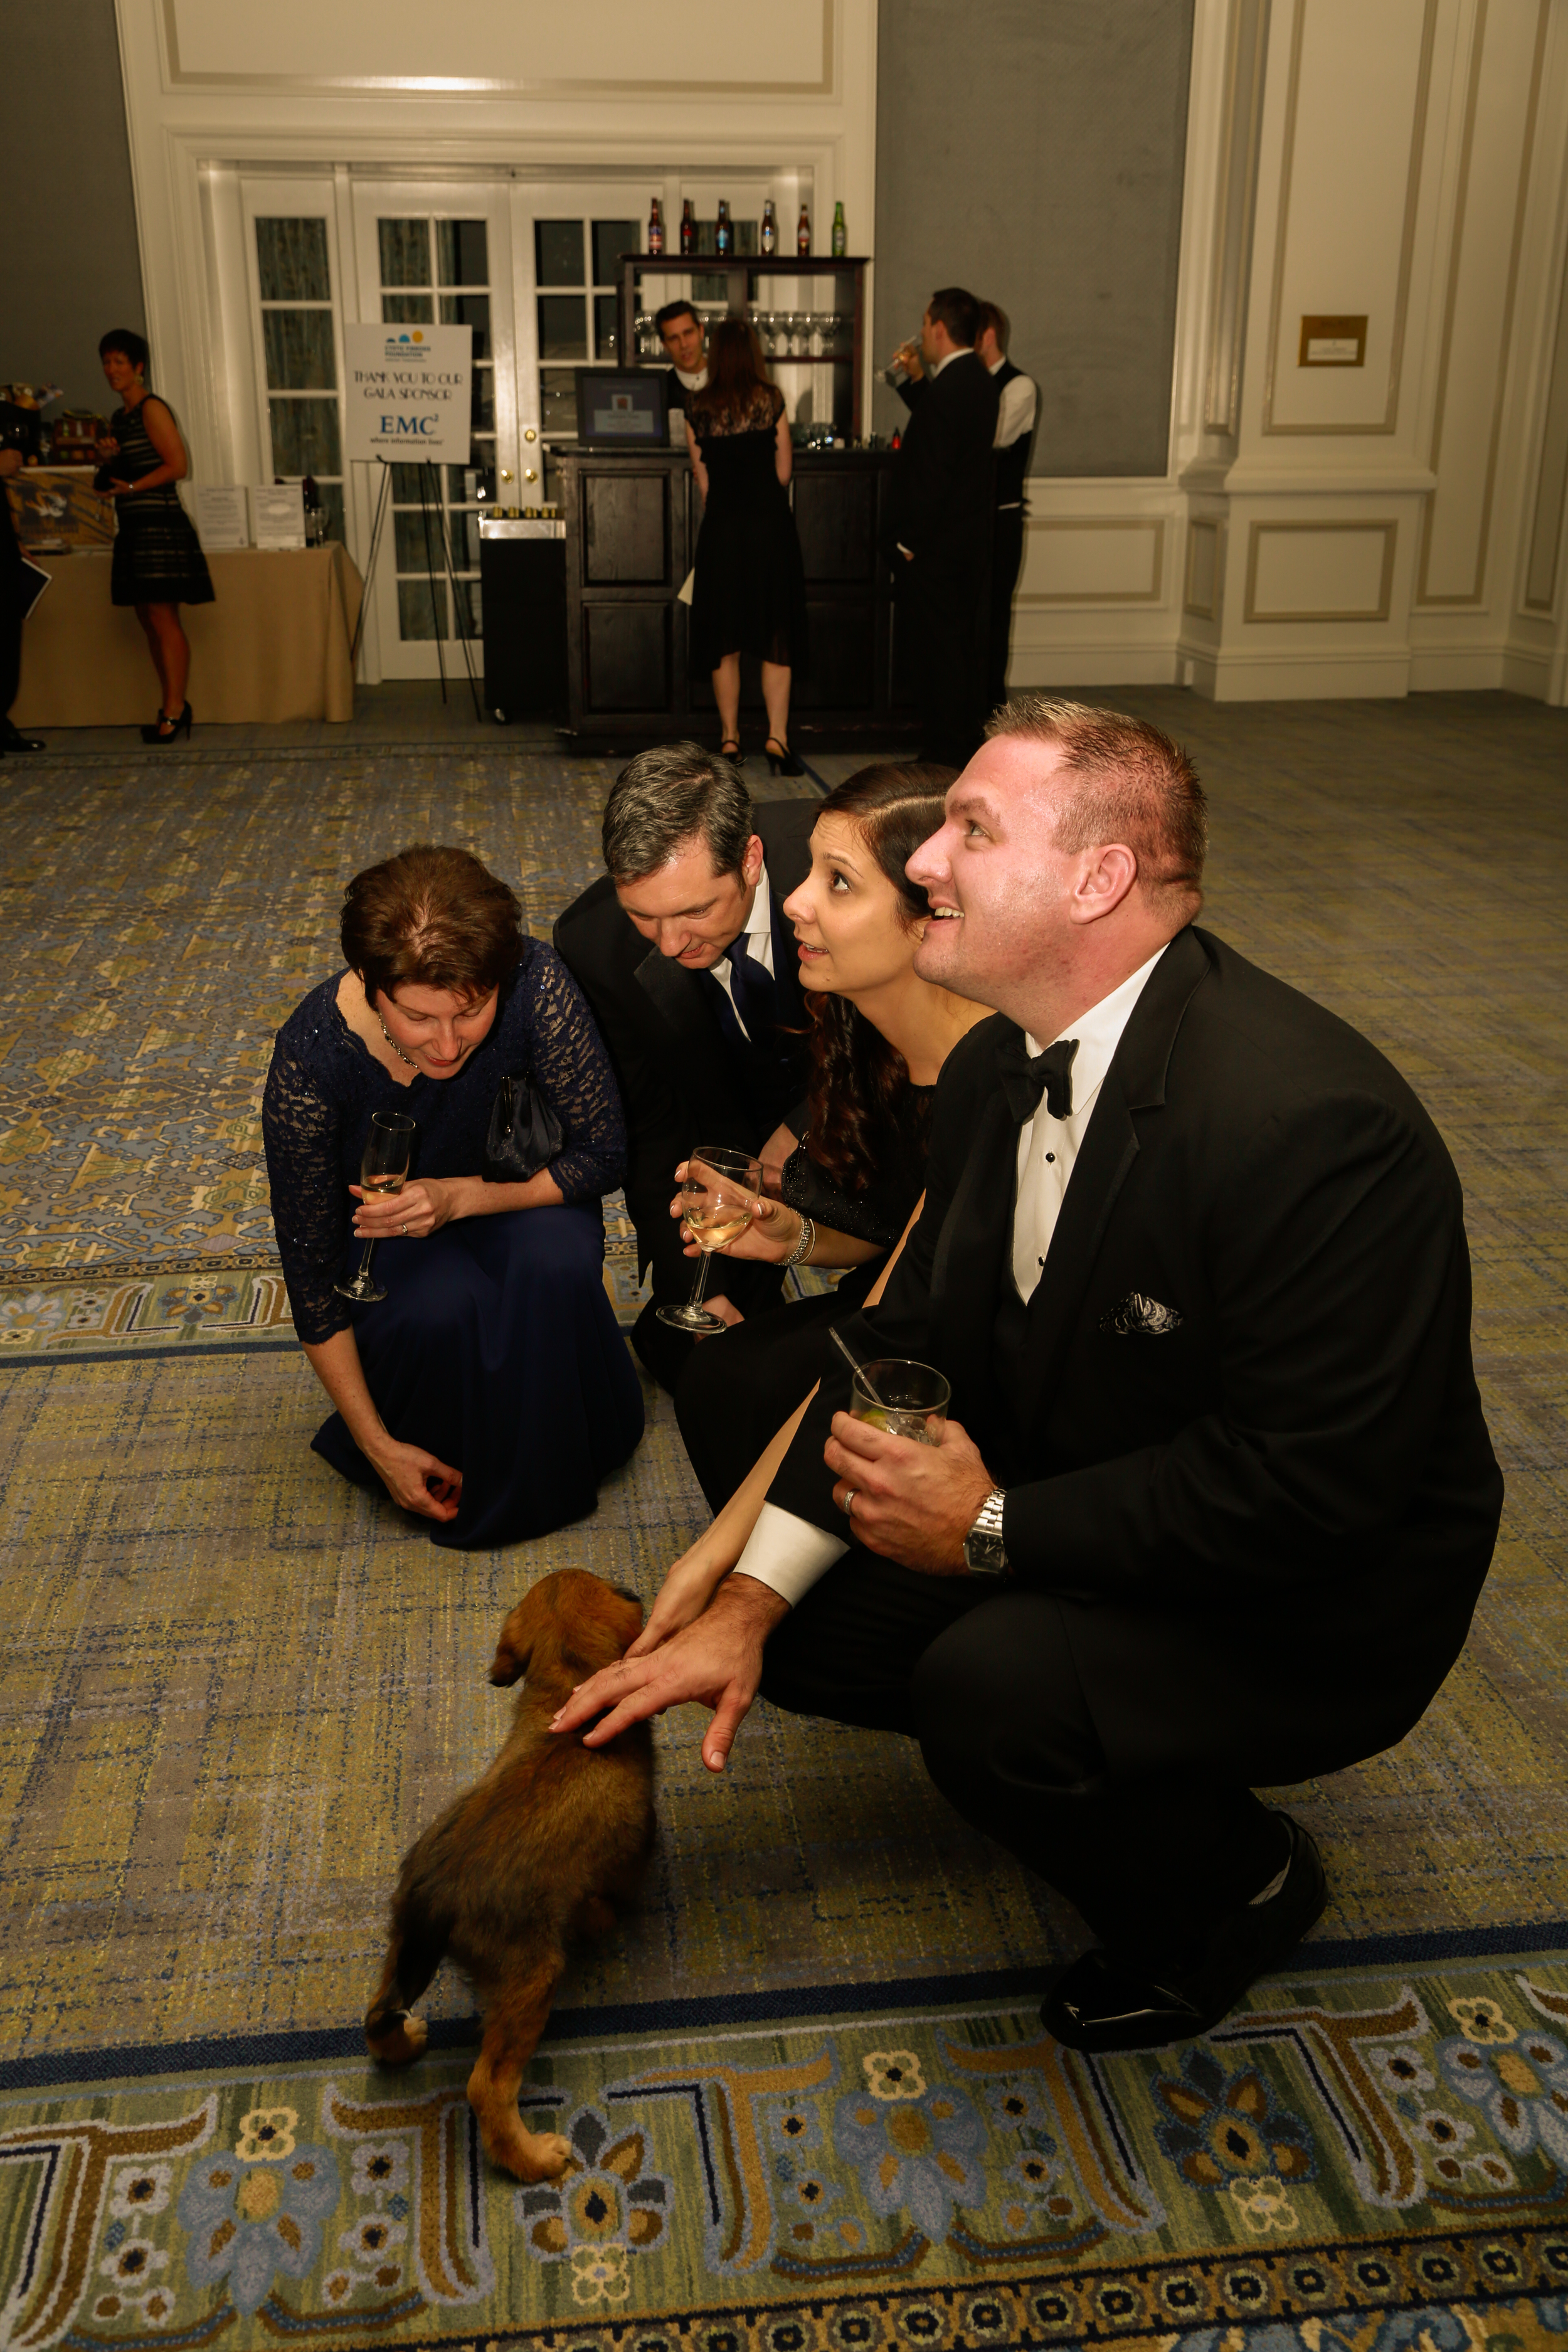 guests playing with the sweet puppy, one of the featured live auction items.